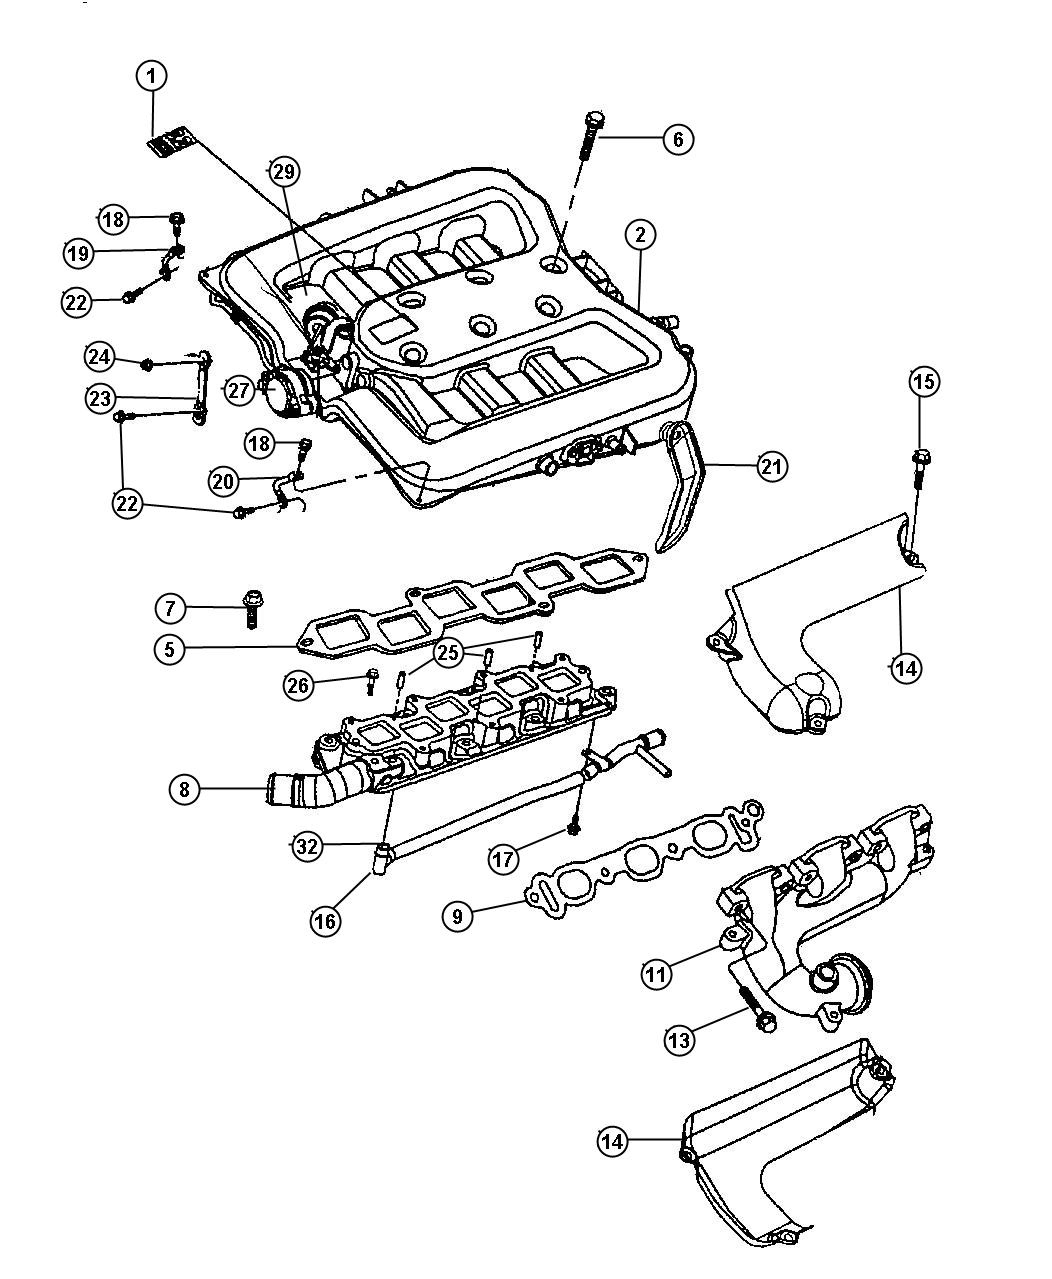 2010 Chrysler Town & Country Gasket. Cylinder head to